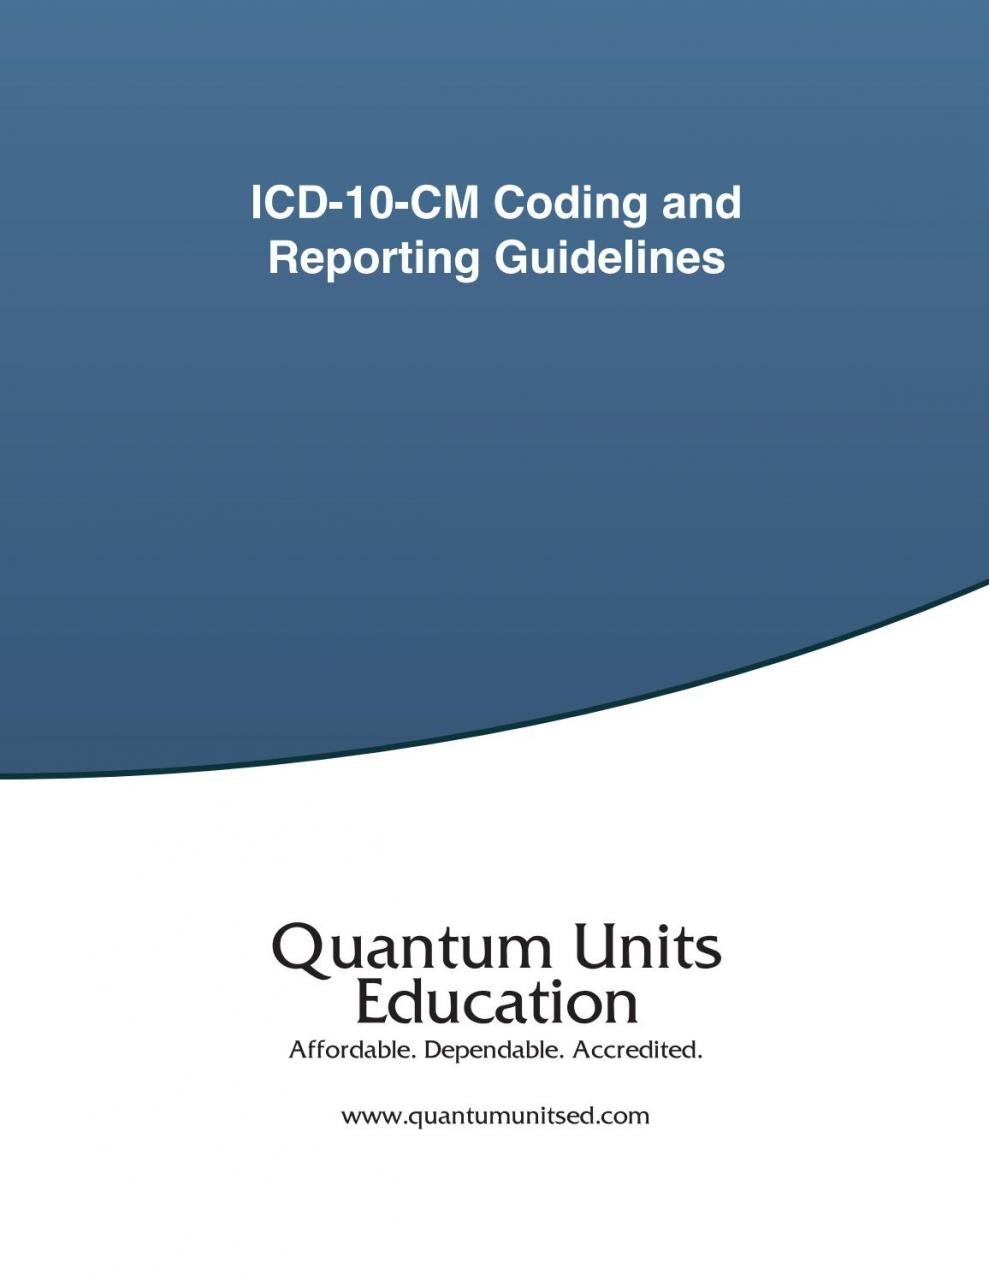 ICD-10-CM Coding and Reporting Guidelines by Quantum Units Continuing  Education - issuu